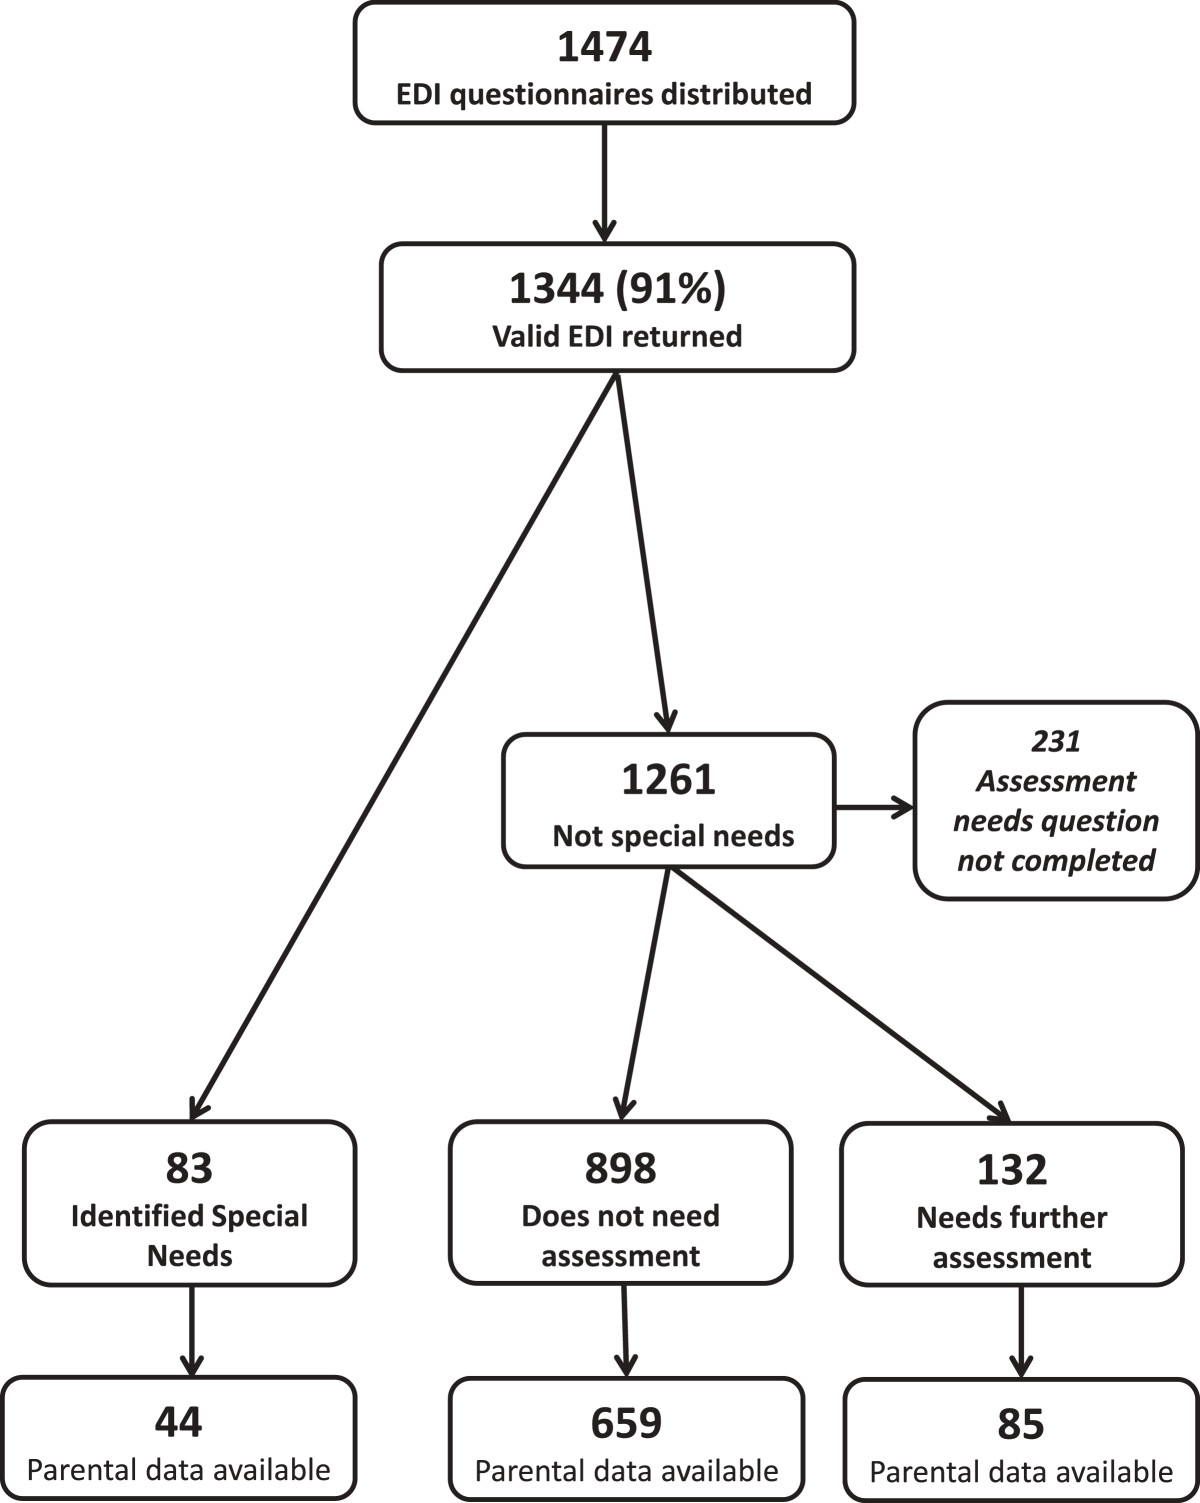 https://static-content.springer.com/image/art%3A10.1186%2F1471-2431-14-52/MediaObjects/12887_2013_Article_990_Fig1_HTML.jpg